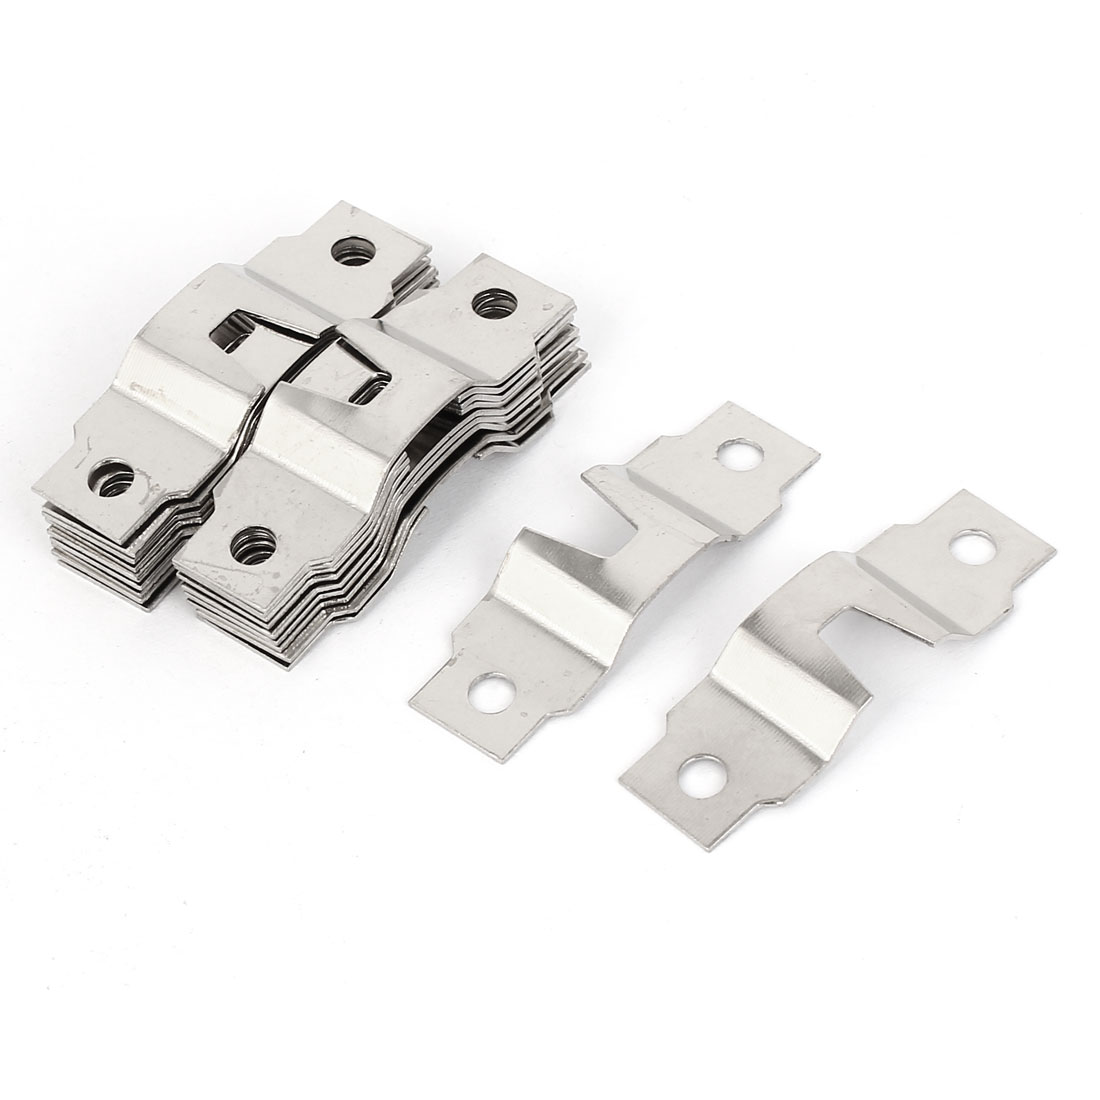 47mm x 15mm x 4mm Metal Double Hole Picture Frame Hanging Hooks Hangers 20PCS